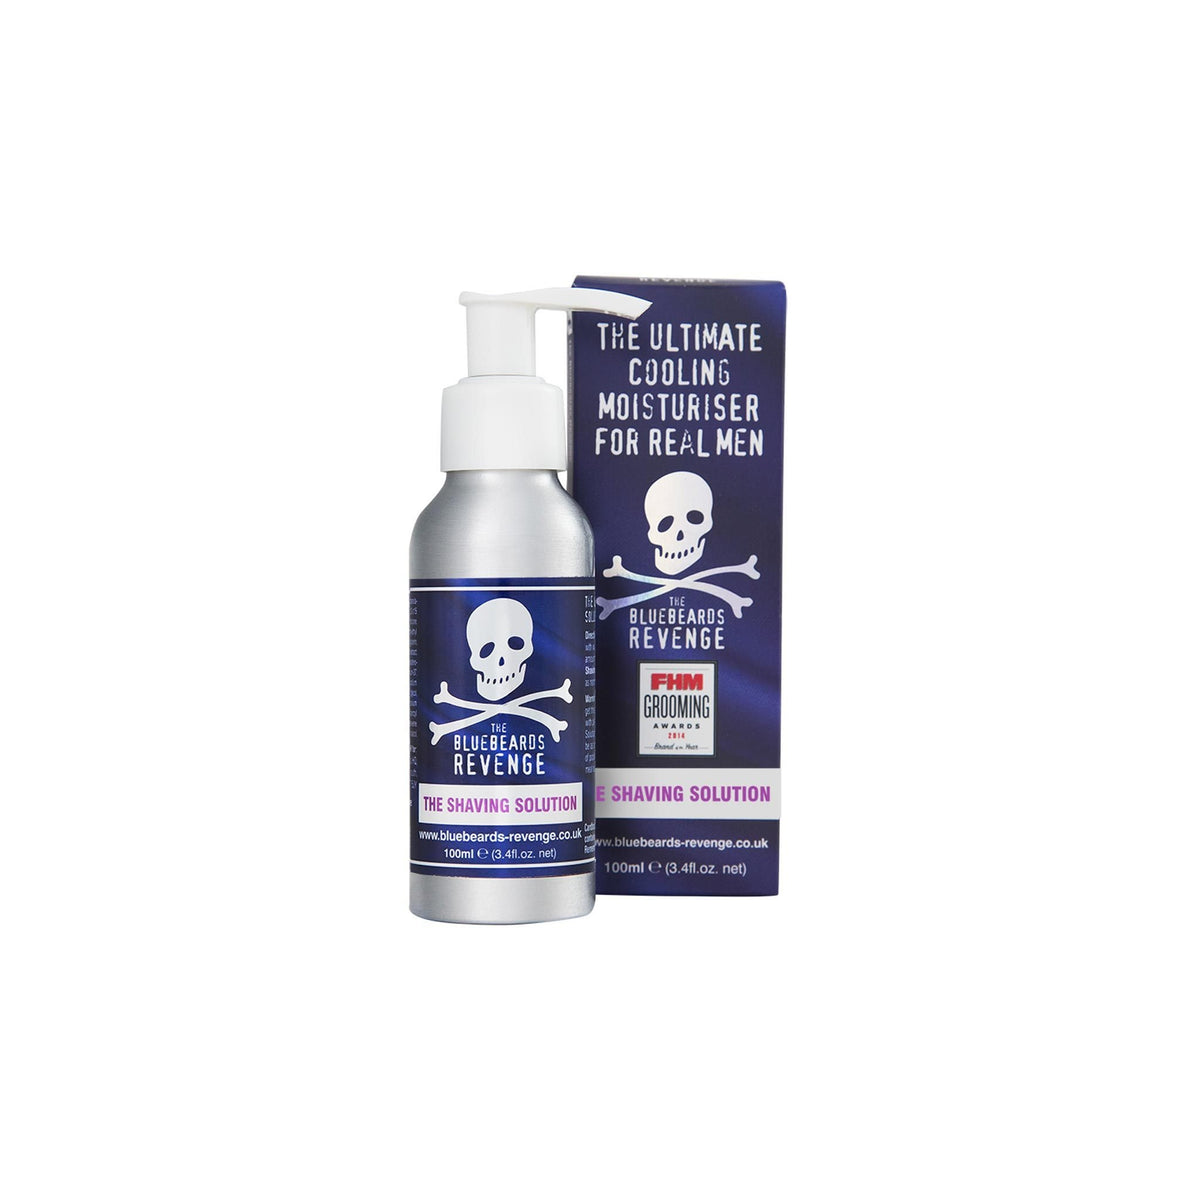 Bluebeards Revenge Shaving Solution 100ml